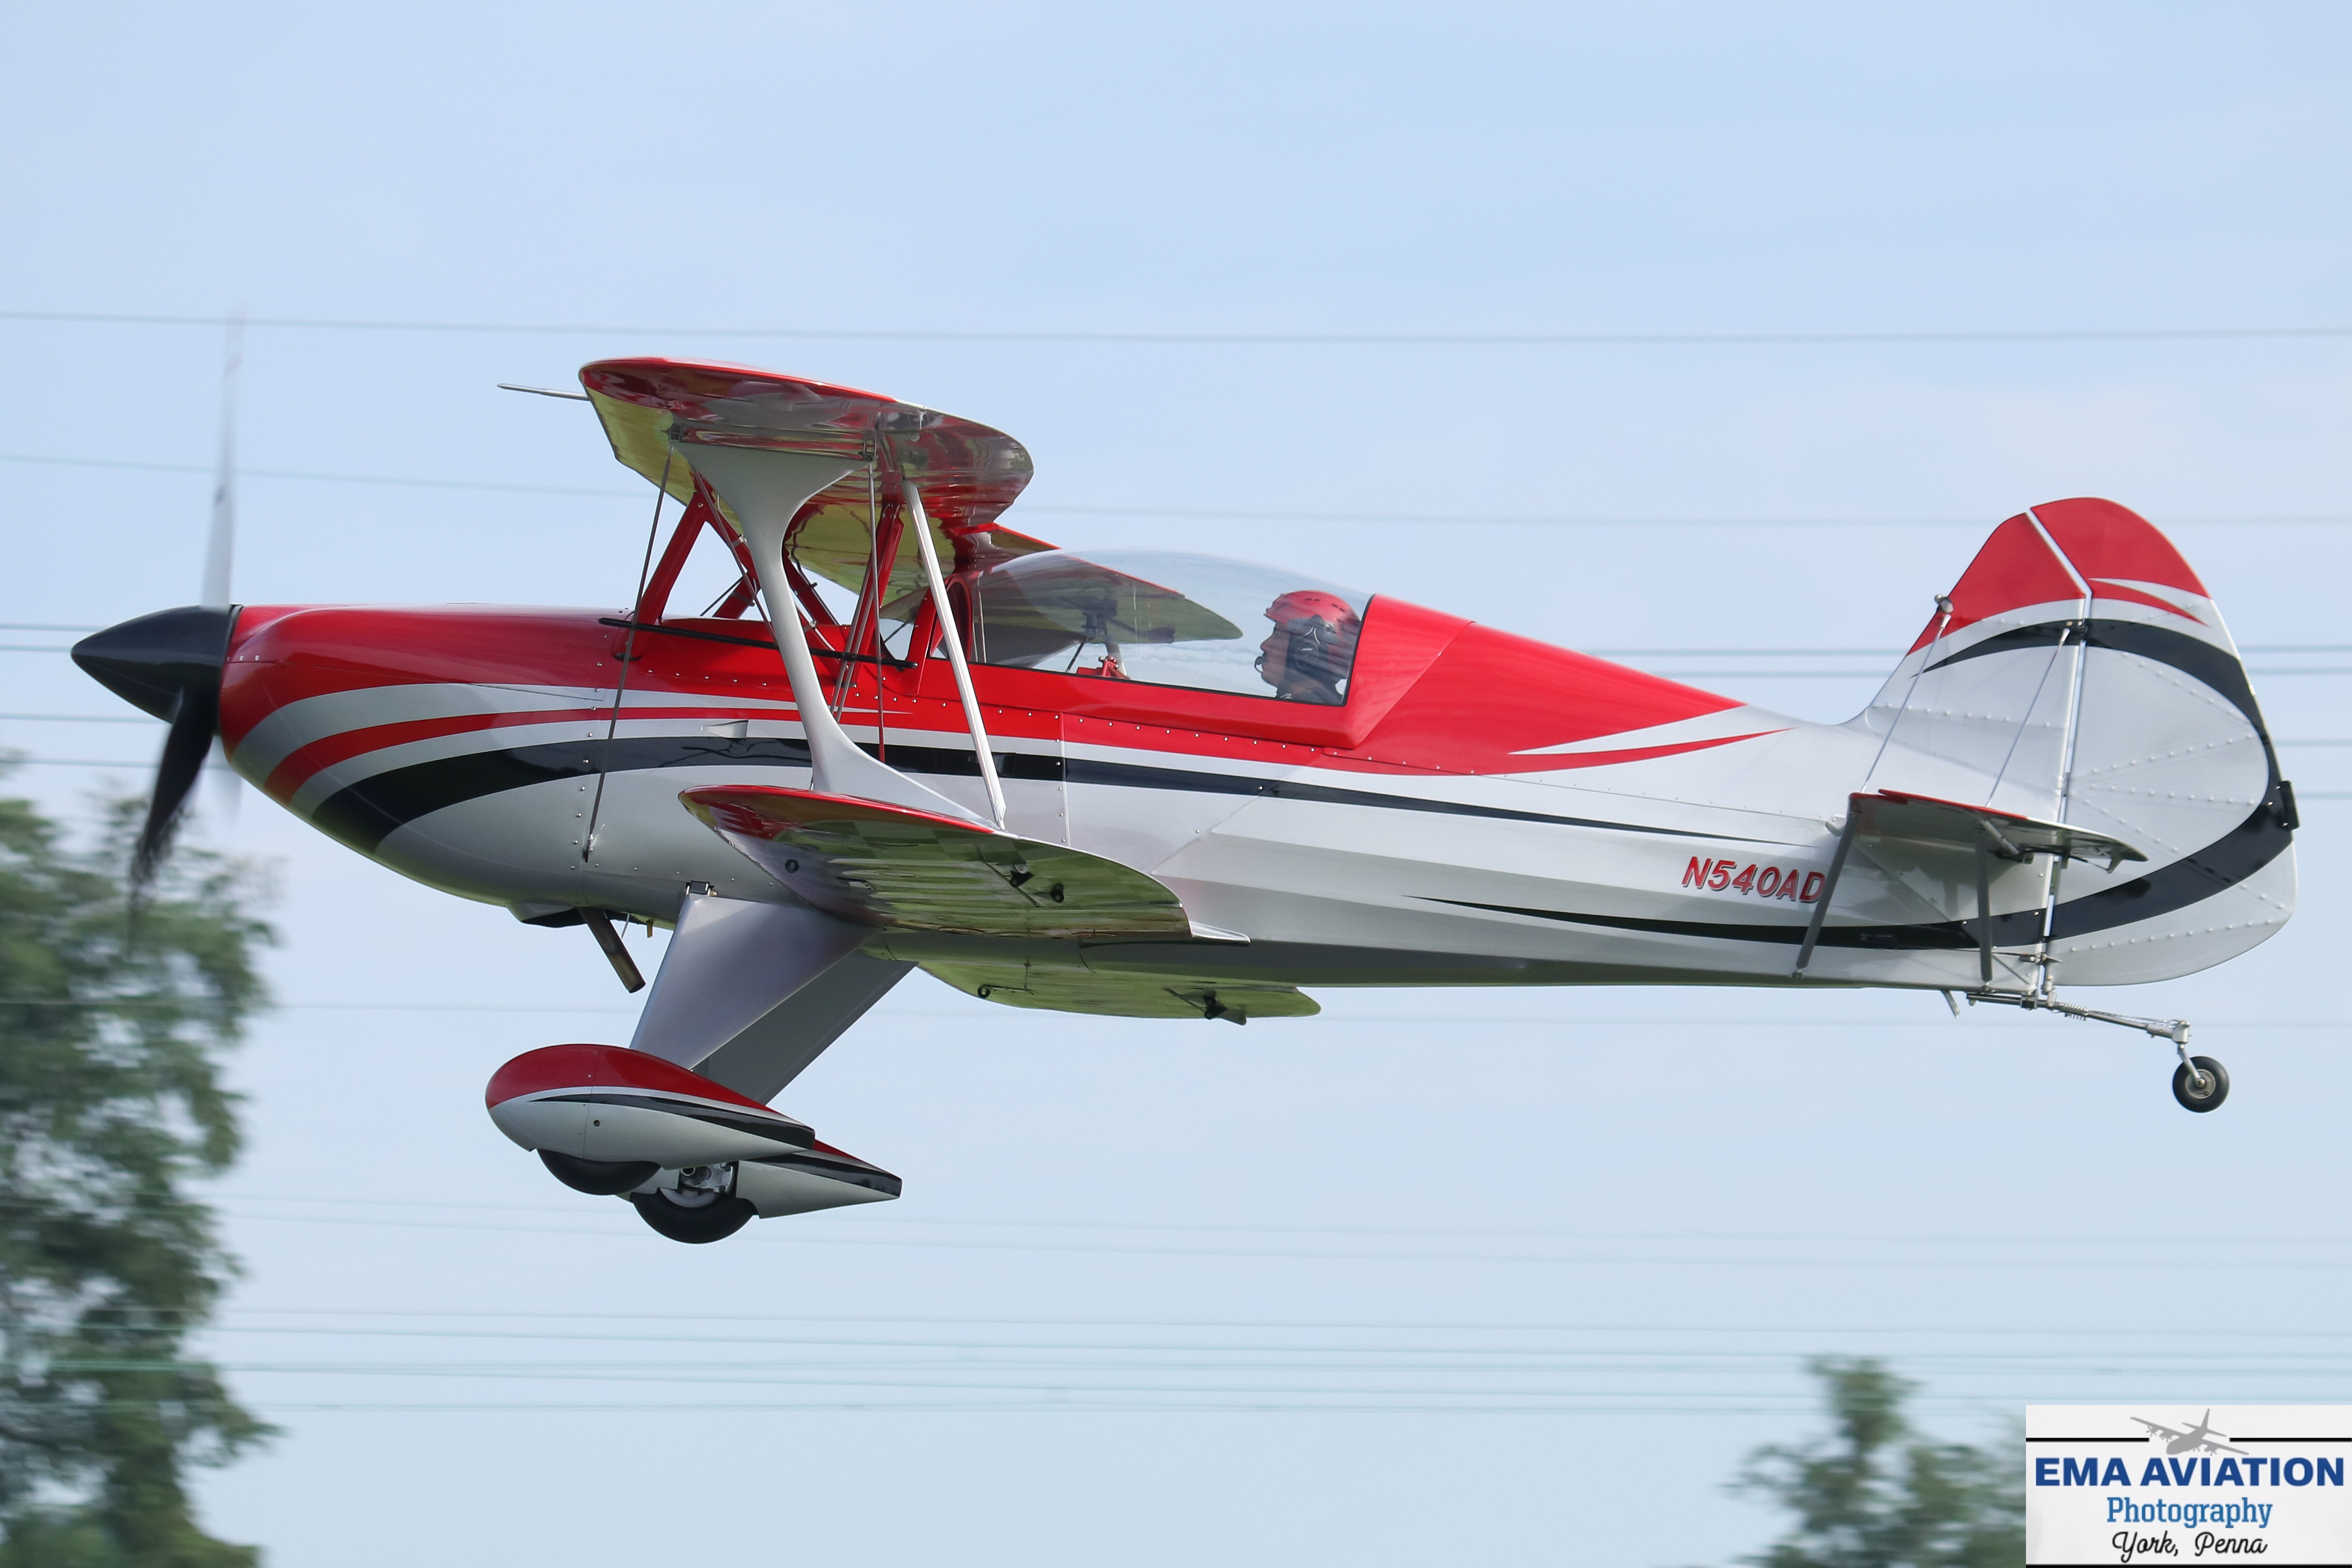 Photo of N540AD - PRIVATE Acroduster Too at S37